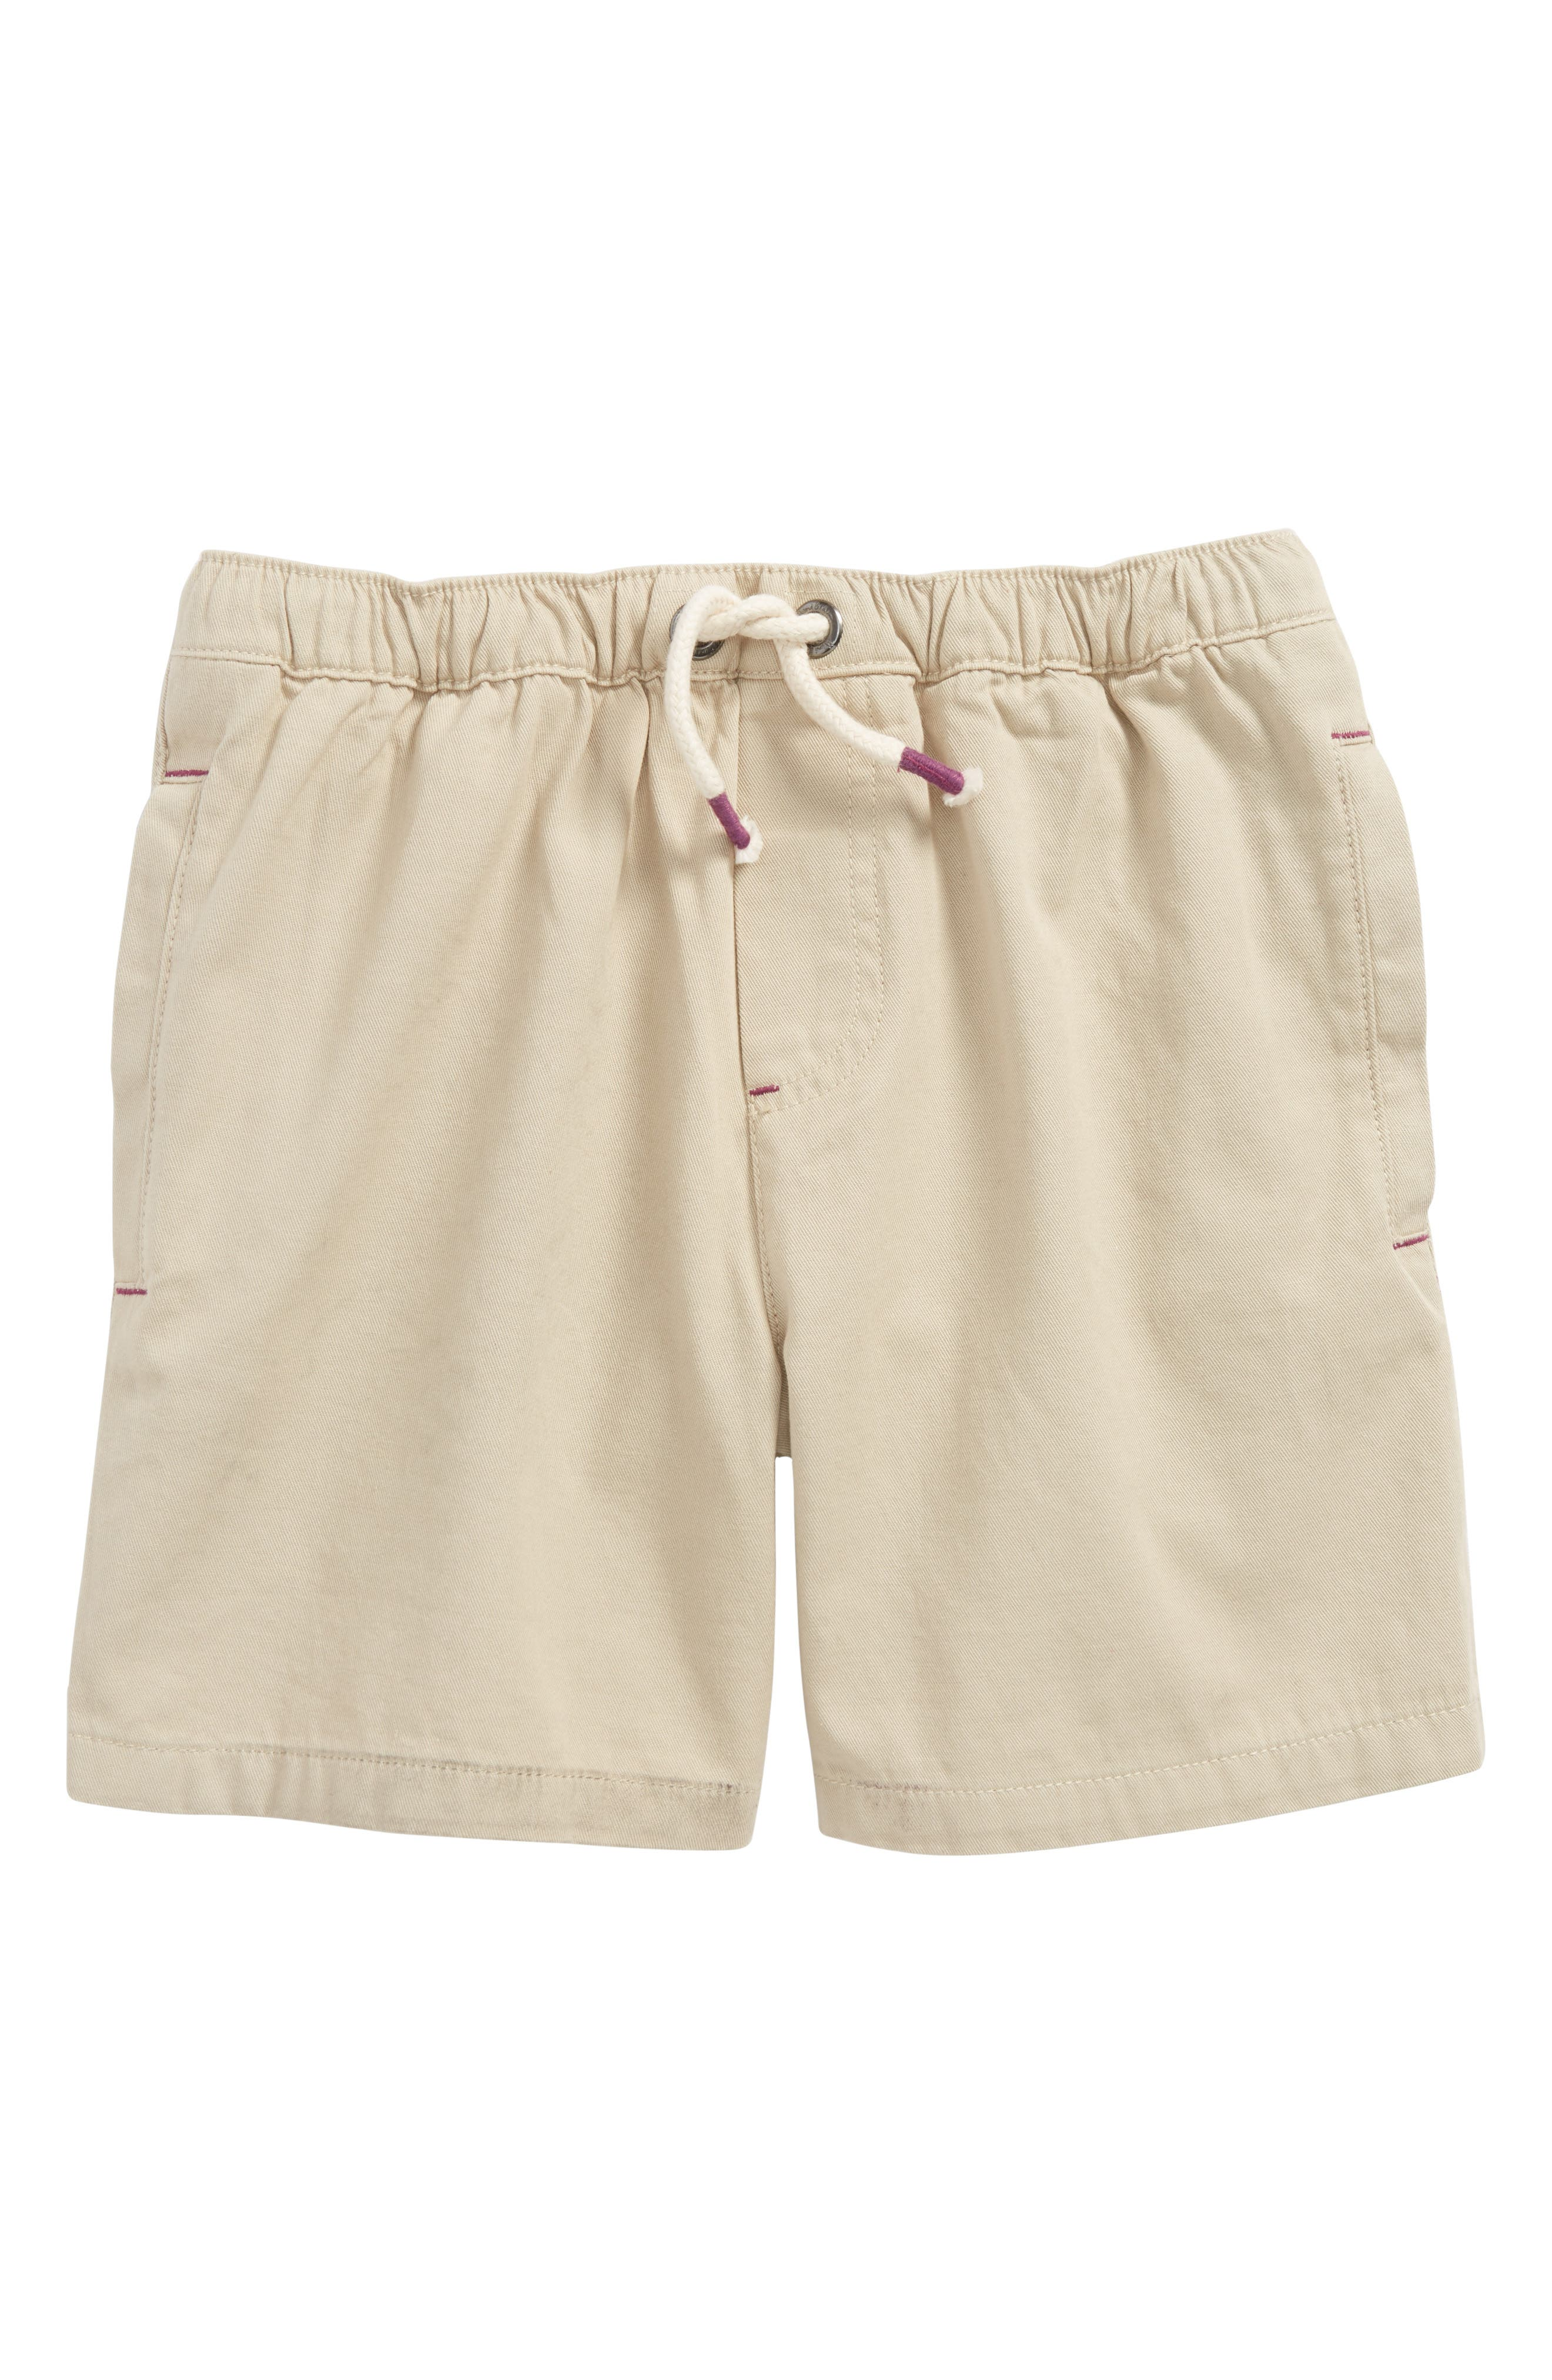 Drawstring Shorts,                         Main,                         color, 250